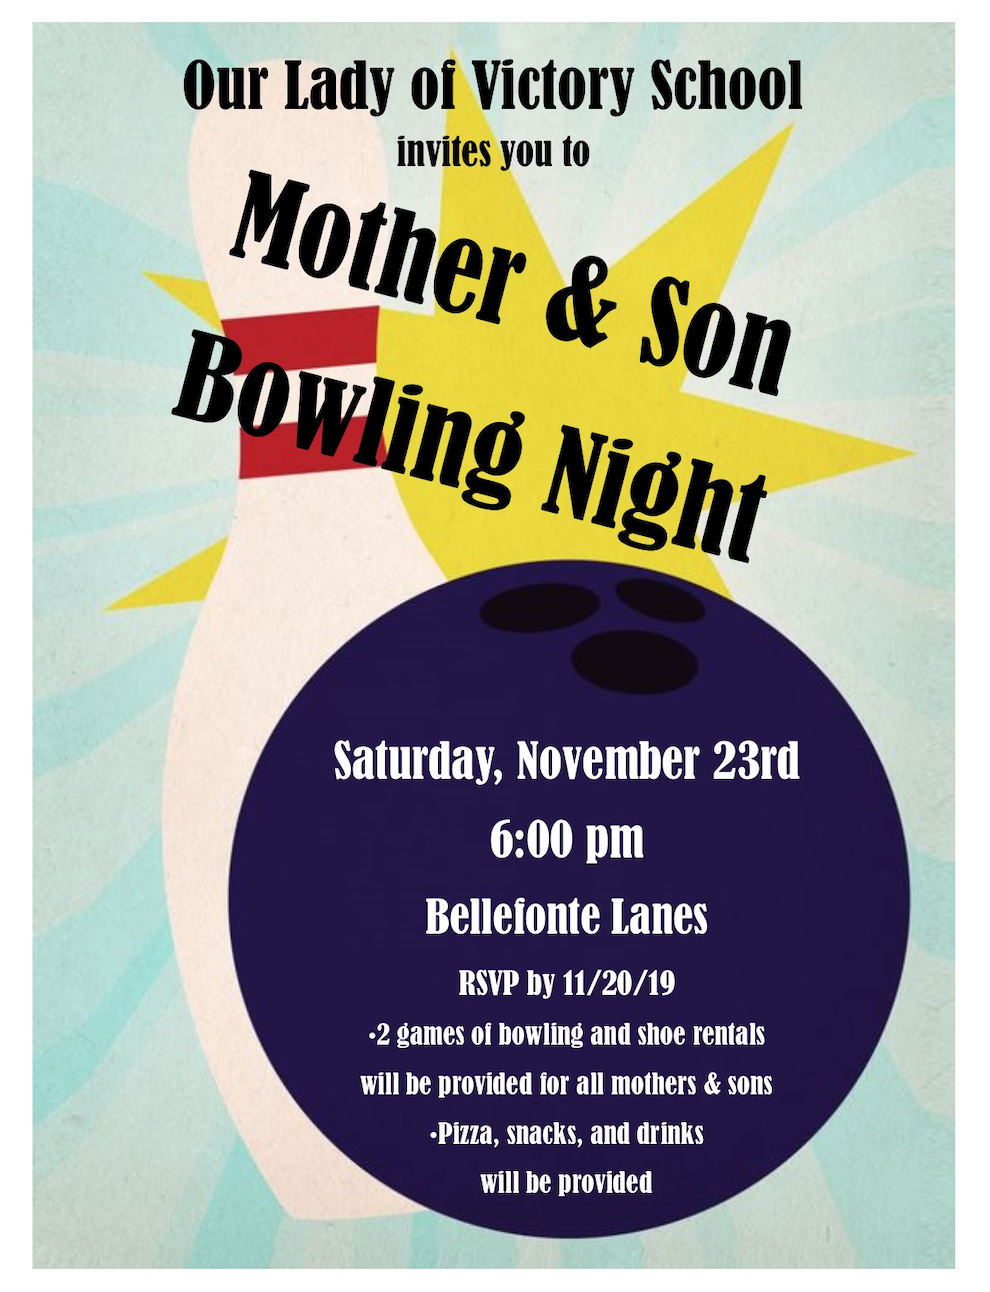 RSVP to Hit Those Strikes at Mother-Son Bowling